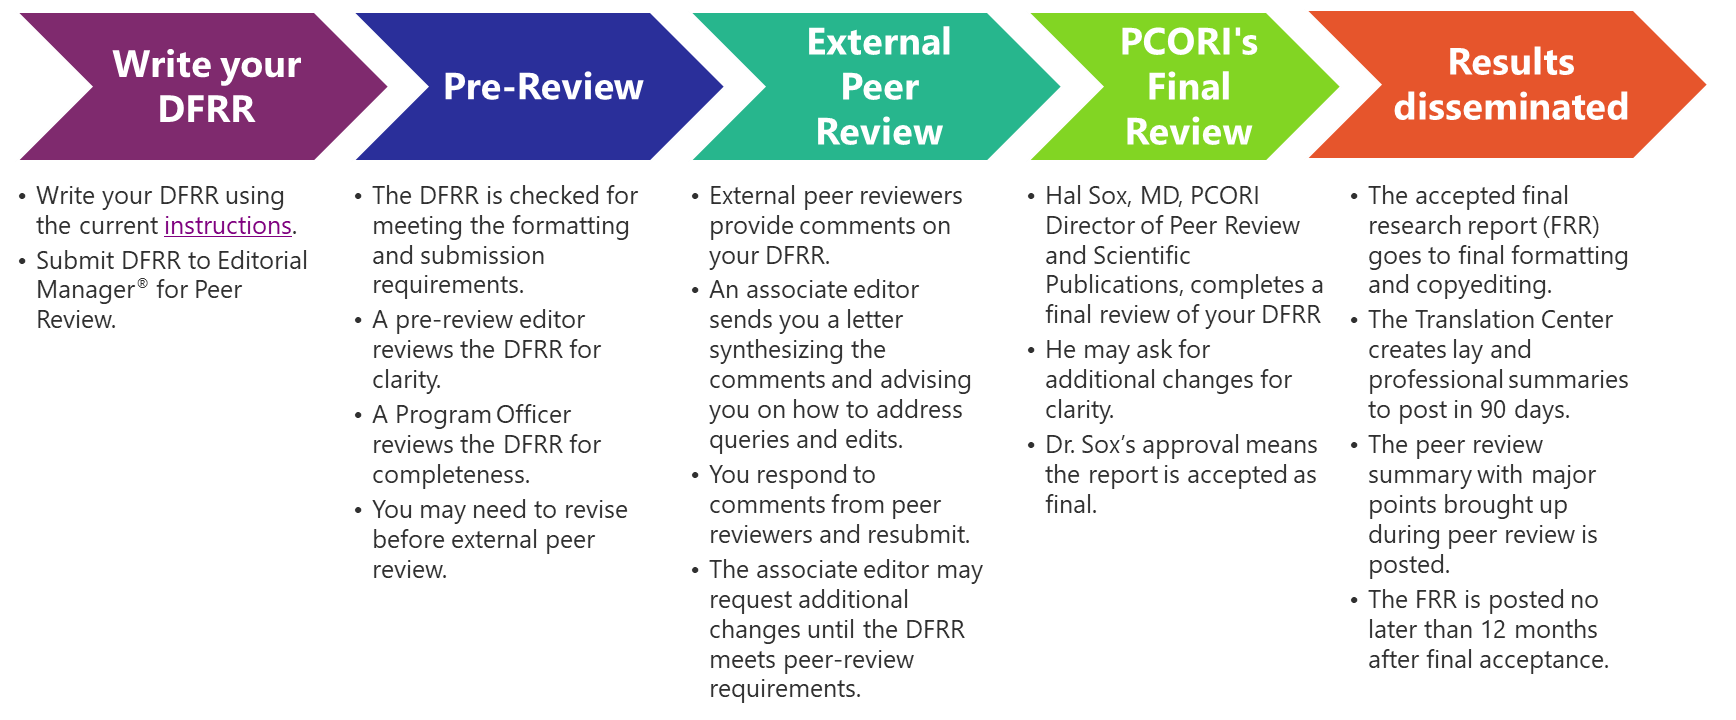 PCORI's Peer-Review Process: